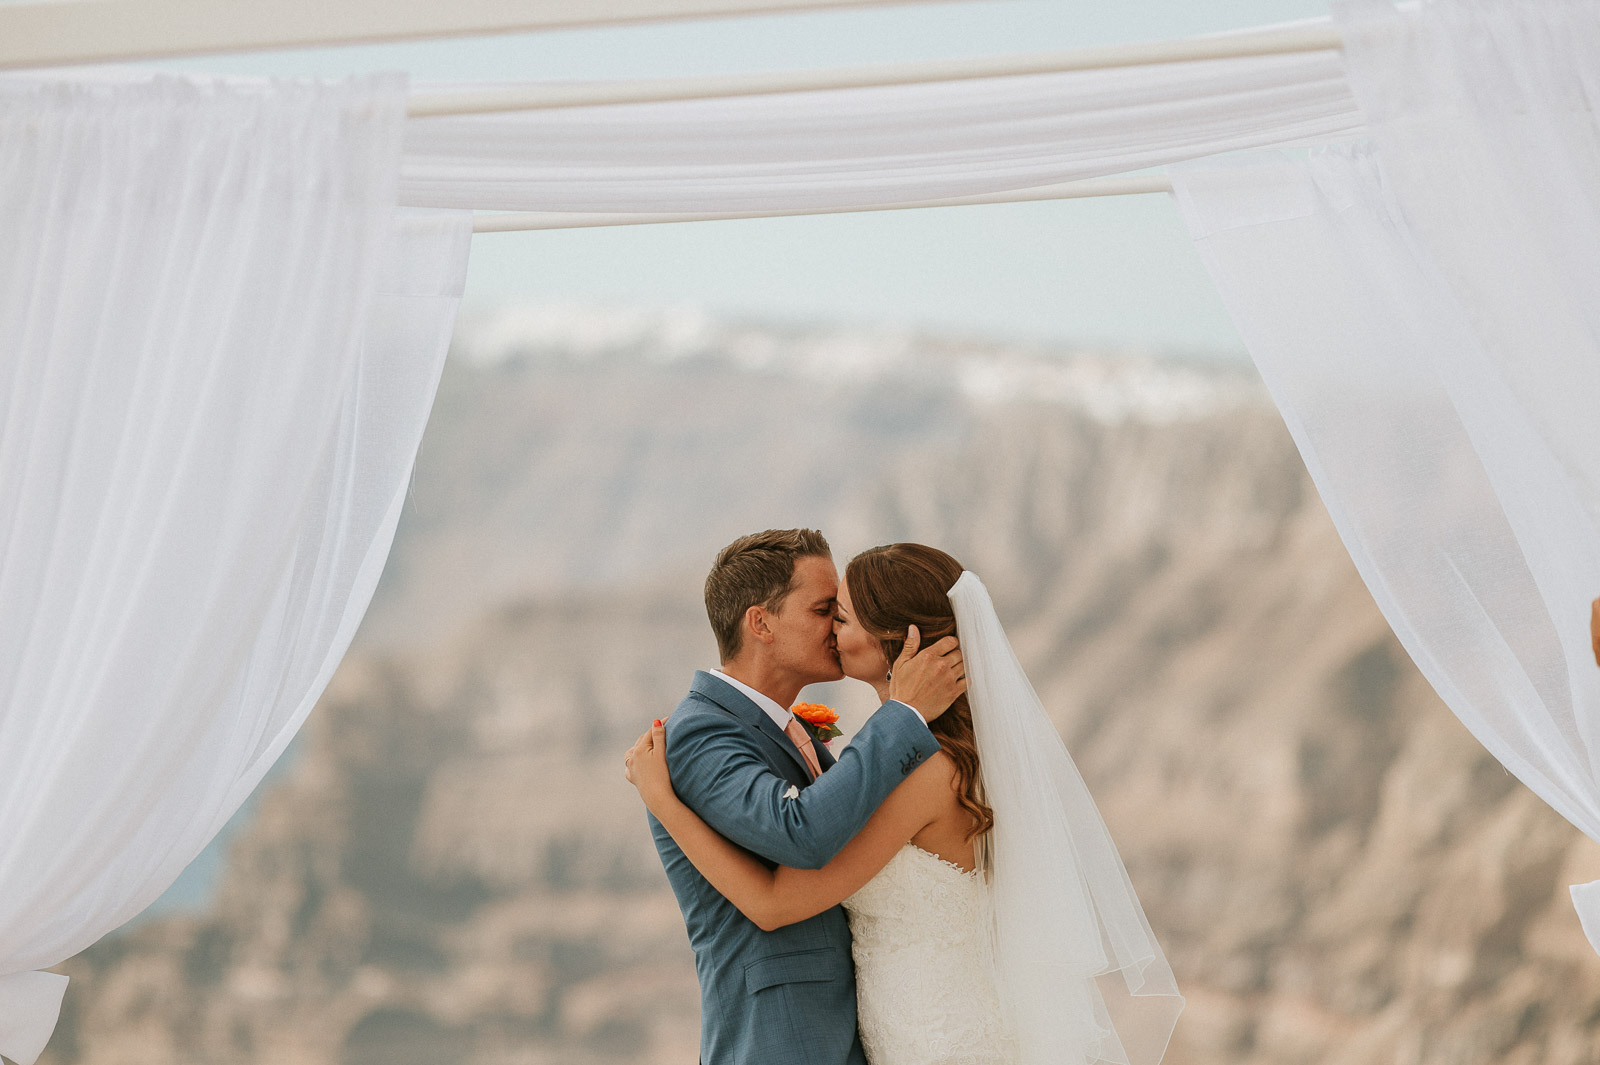 Santorini-Wedding-Photographer-Greece-Destination-Weddings-Mait-Juriado-M&J-Studios-064